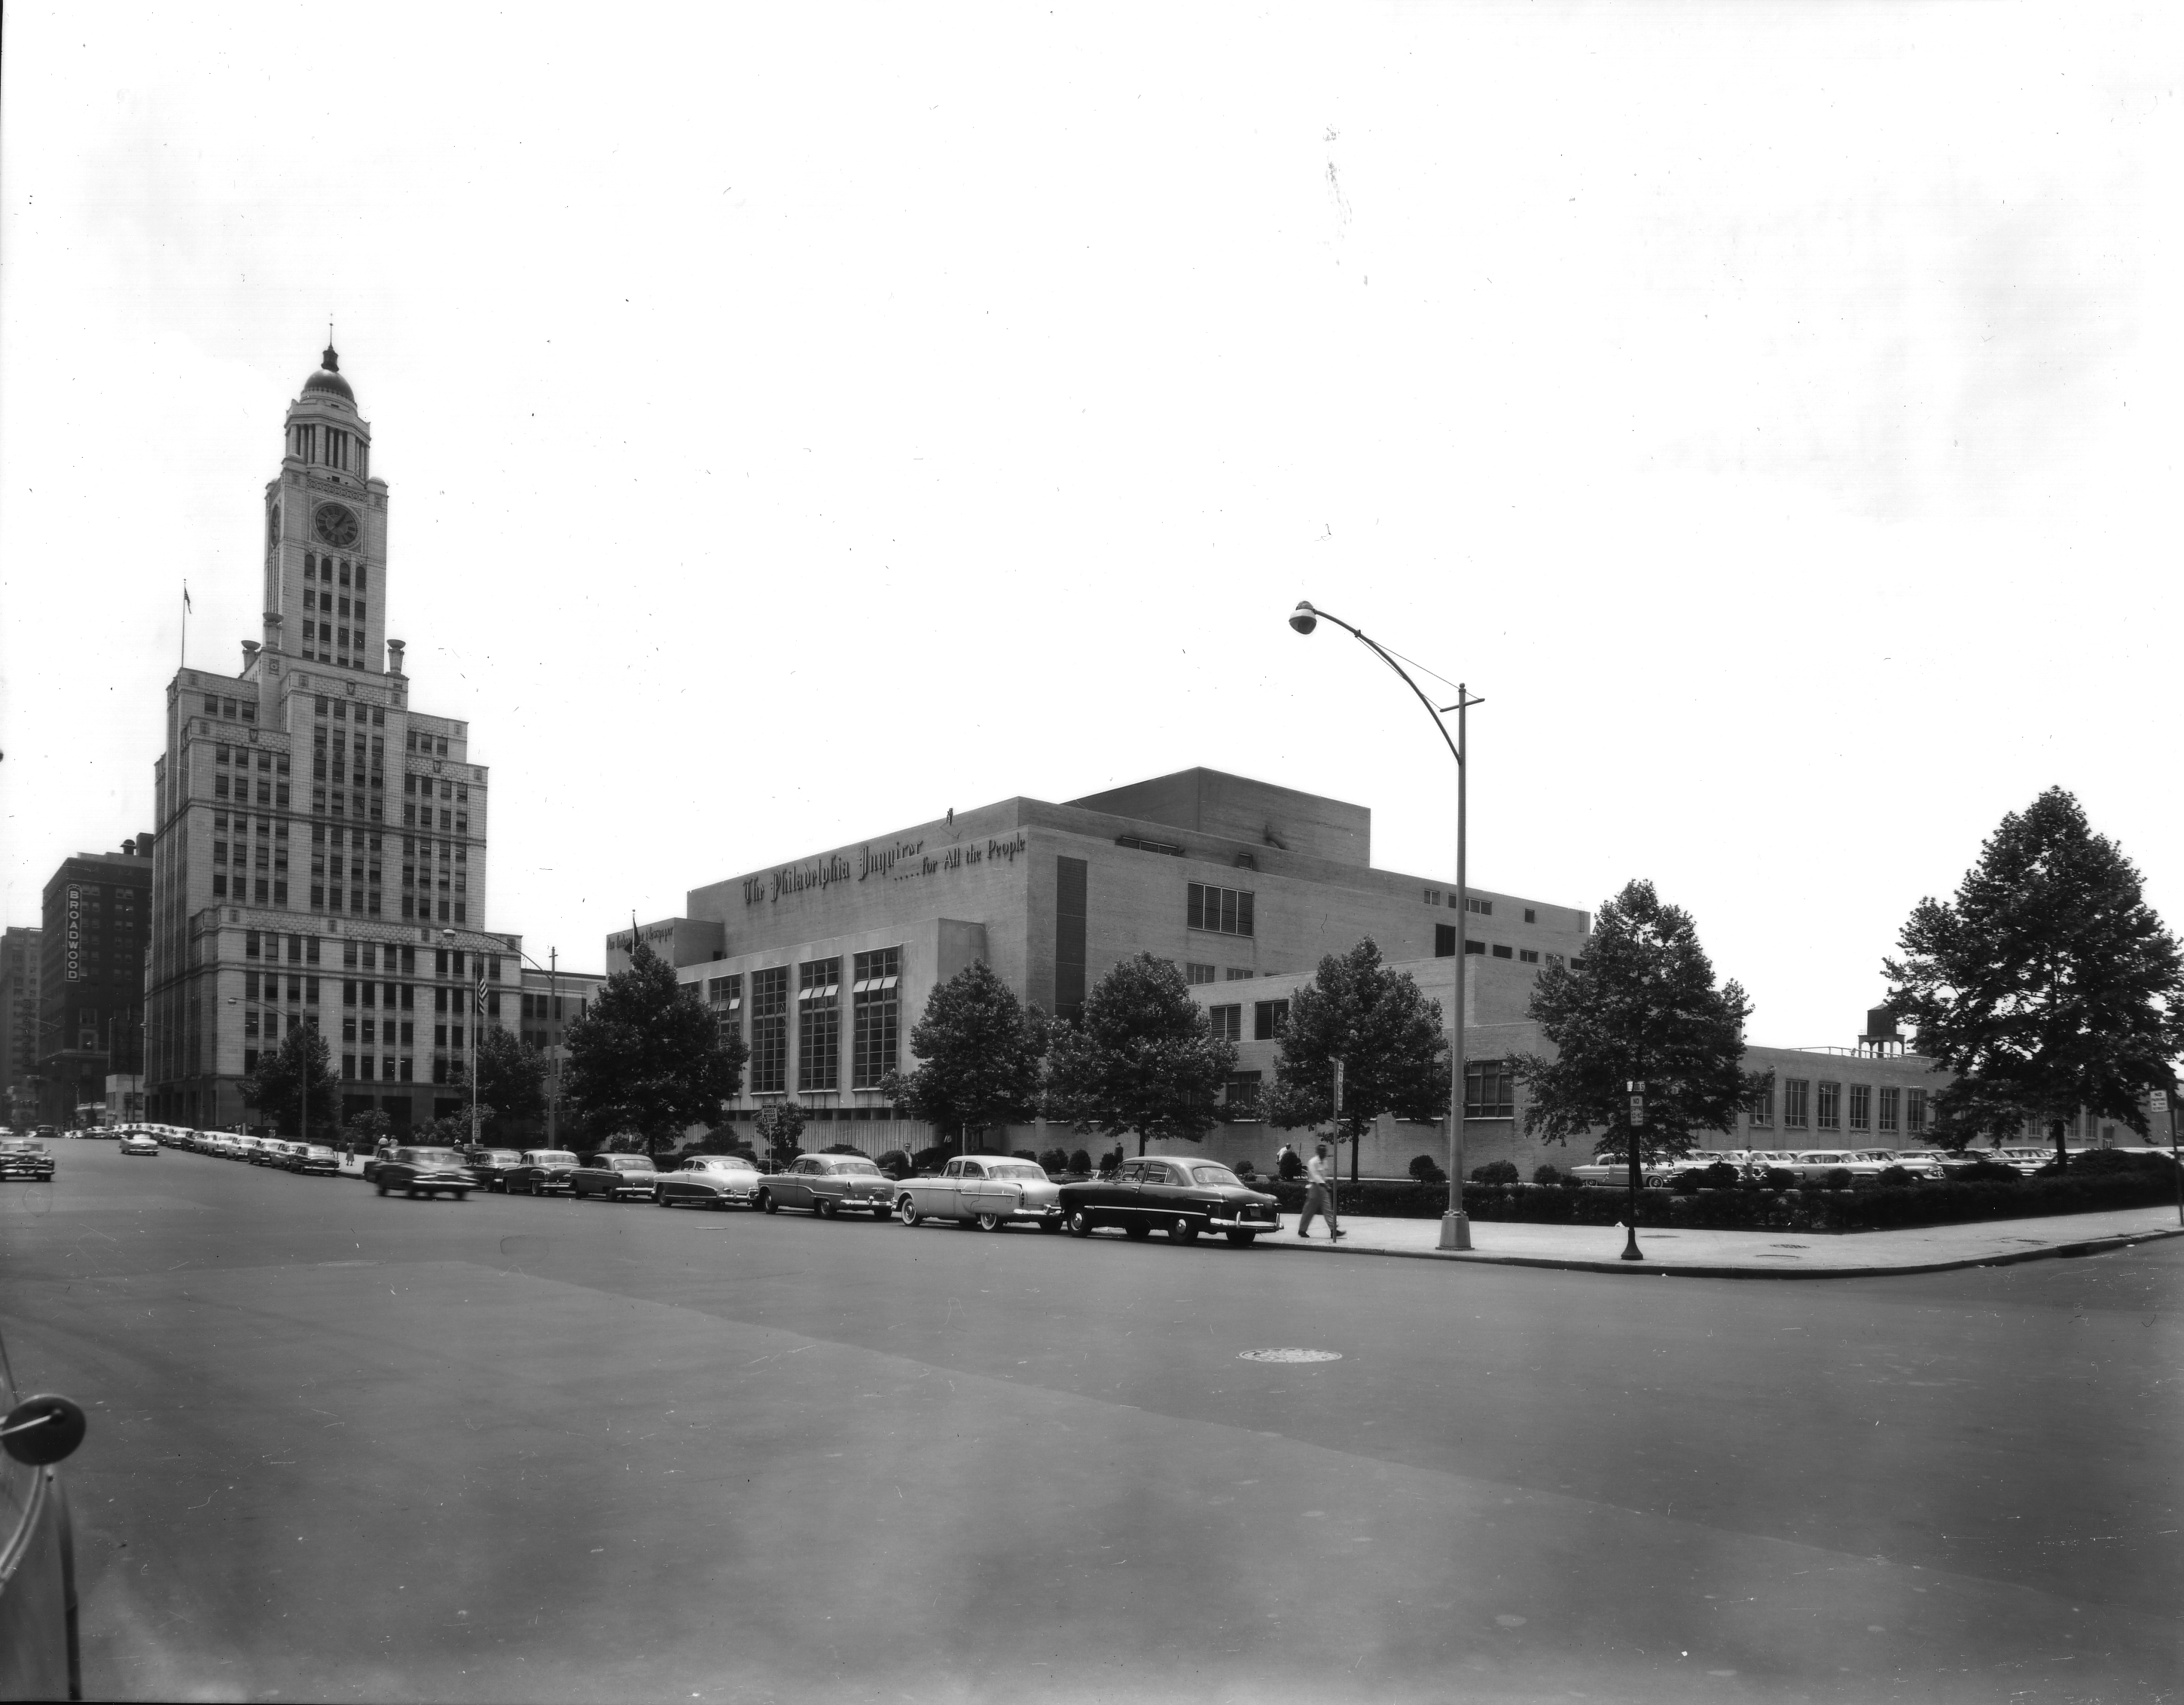 July 9, 1954: Inquirer Building | Parker & Mullikin, Free Library of Philadelphia Print and Picture Collection